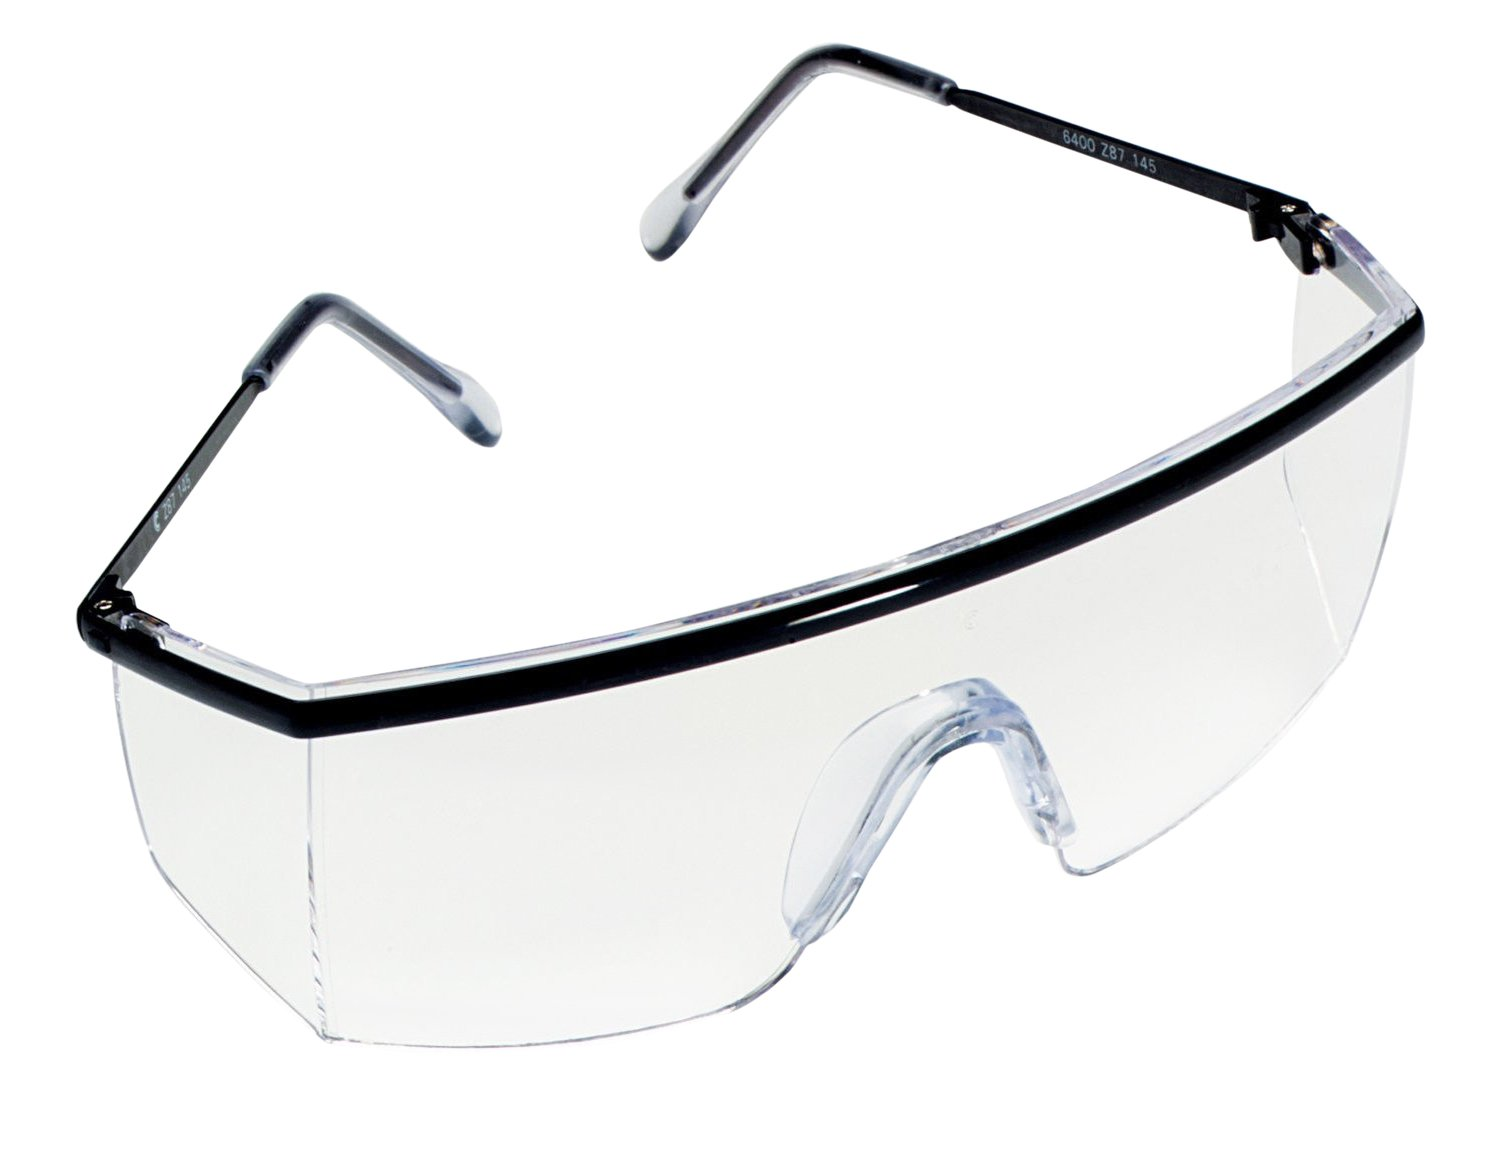 5ec9c64c20f Safety Glasses  Buy Safety Glasses Online at Best Prices in India ...